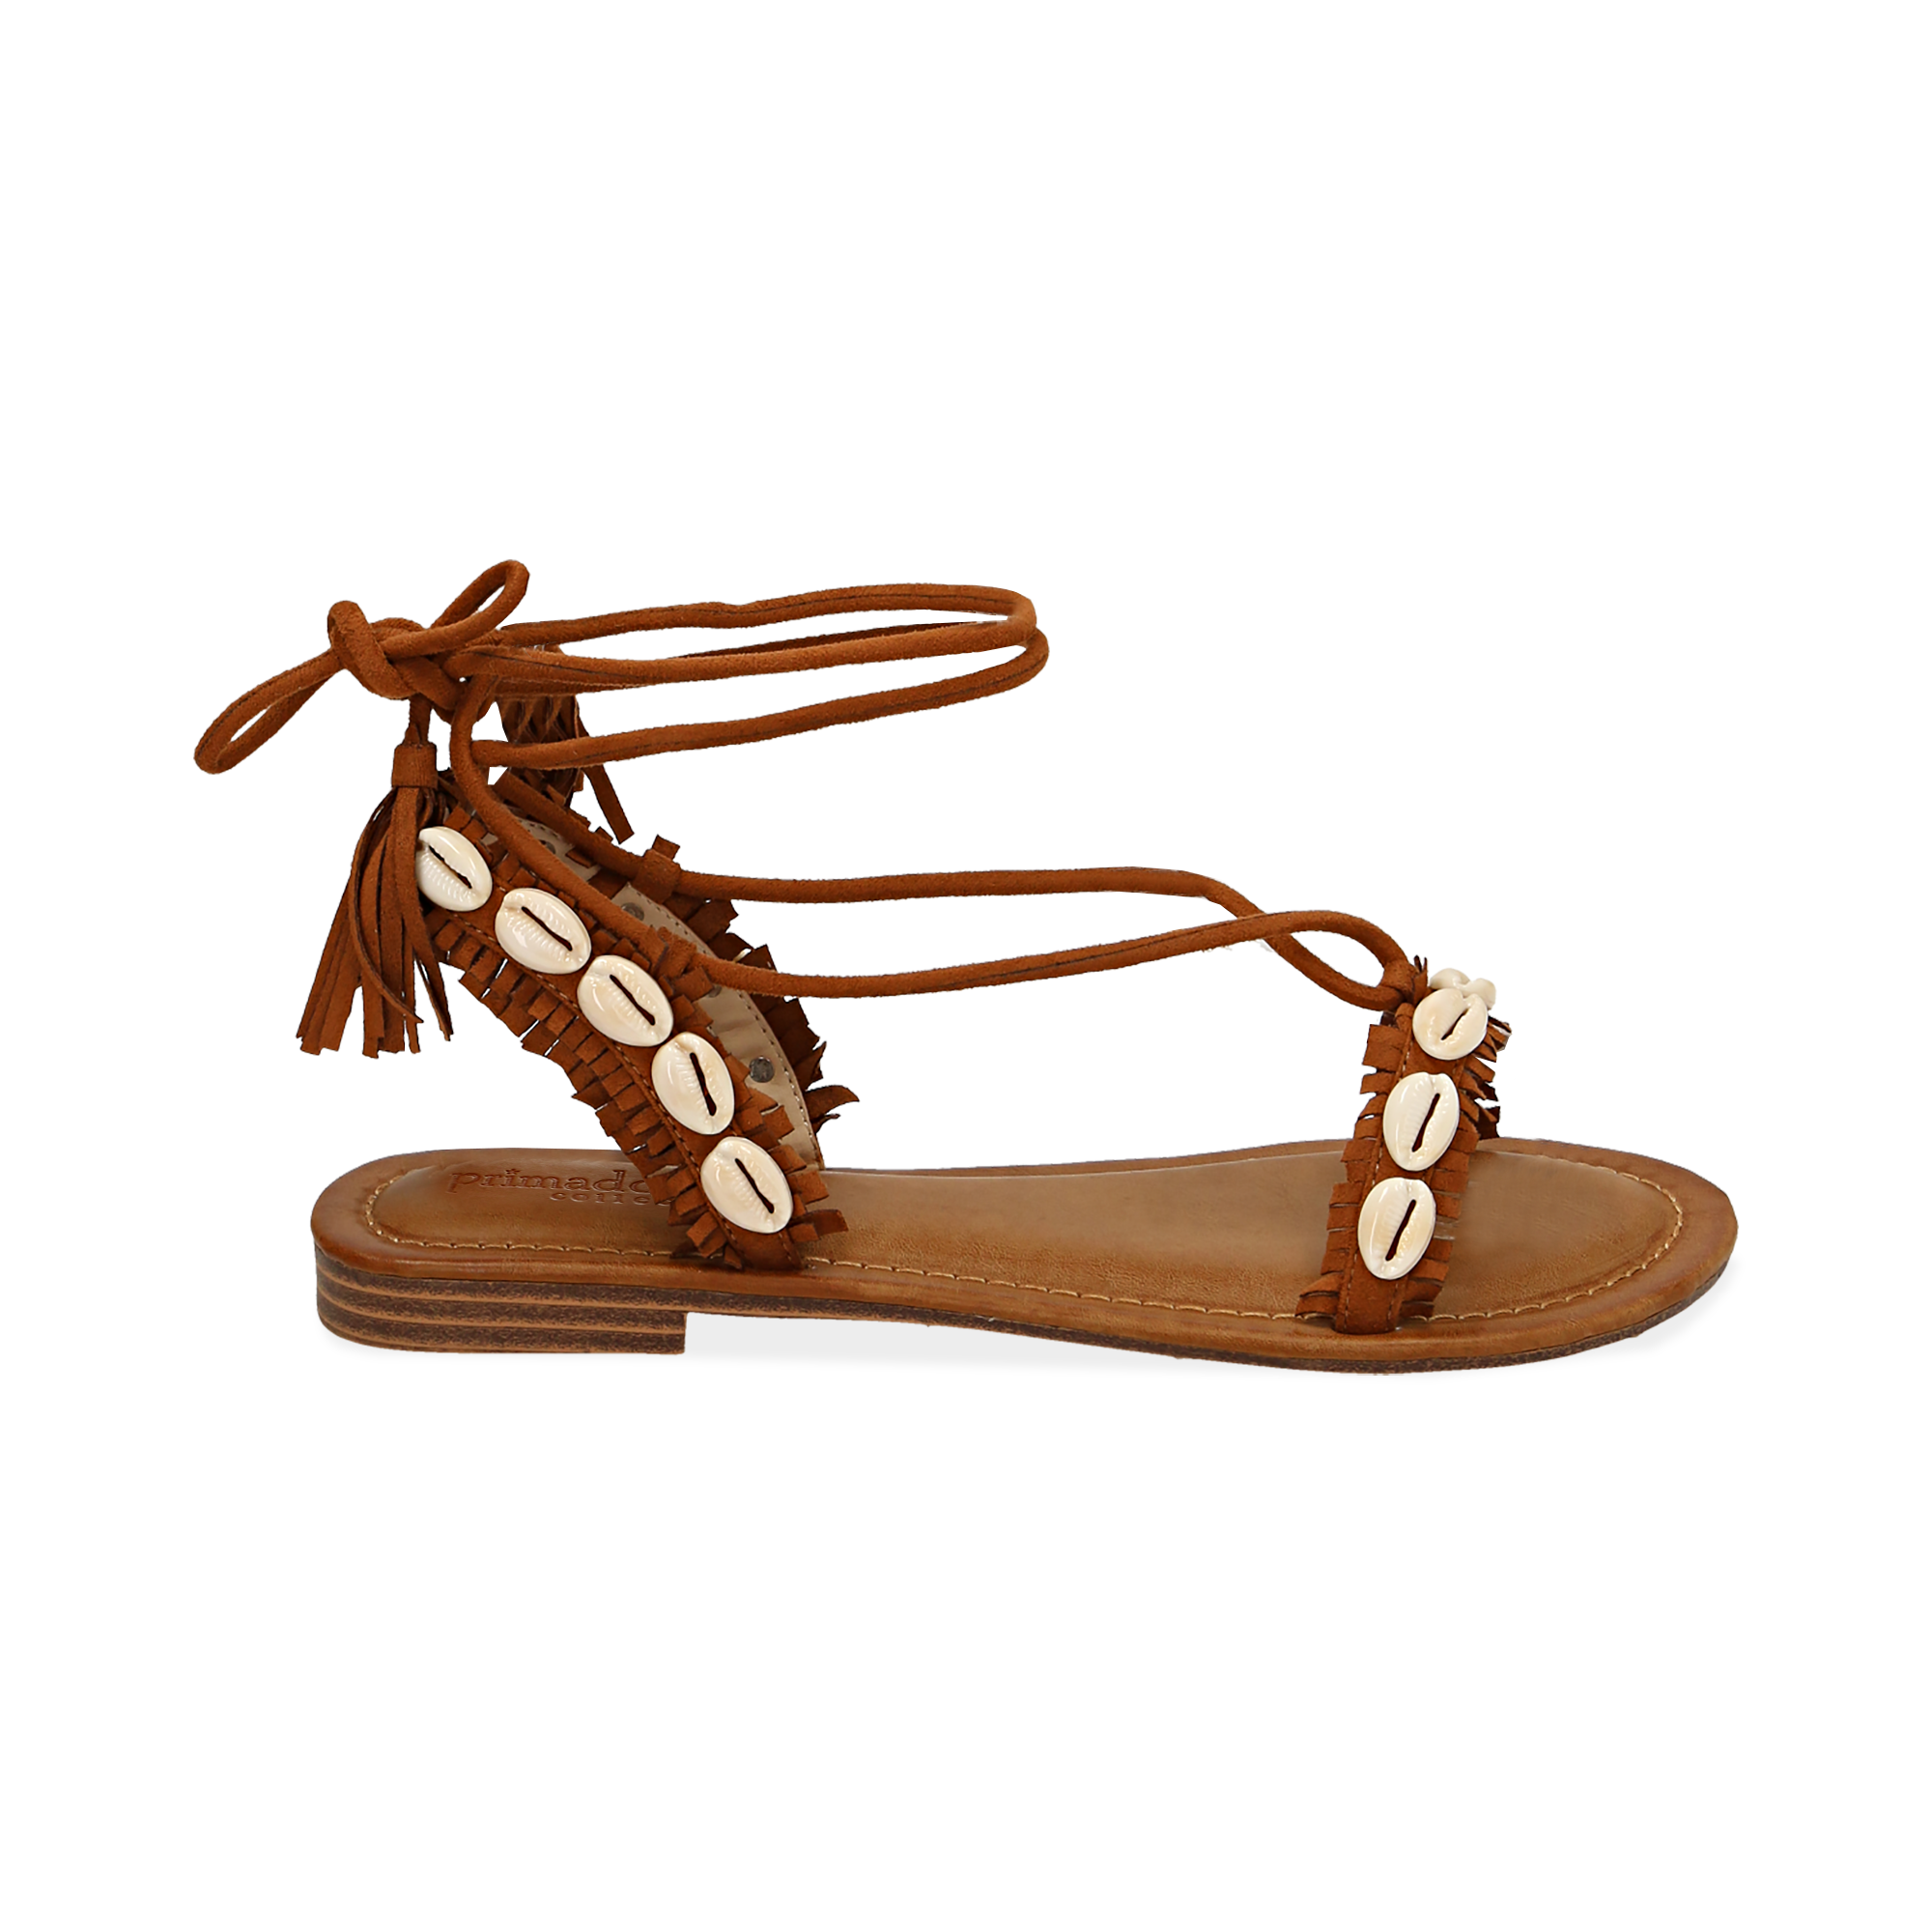 Sandali lace-up cuoio in microfibra con conchiglie